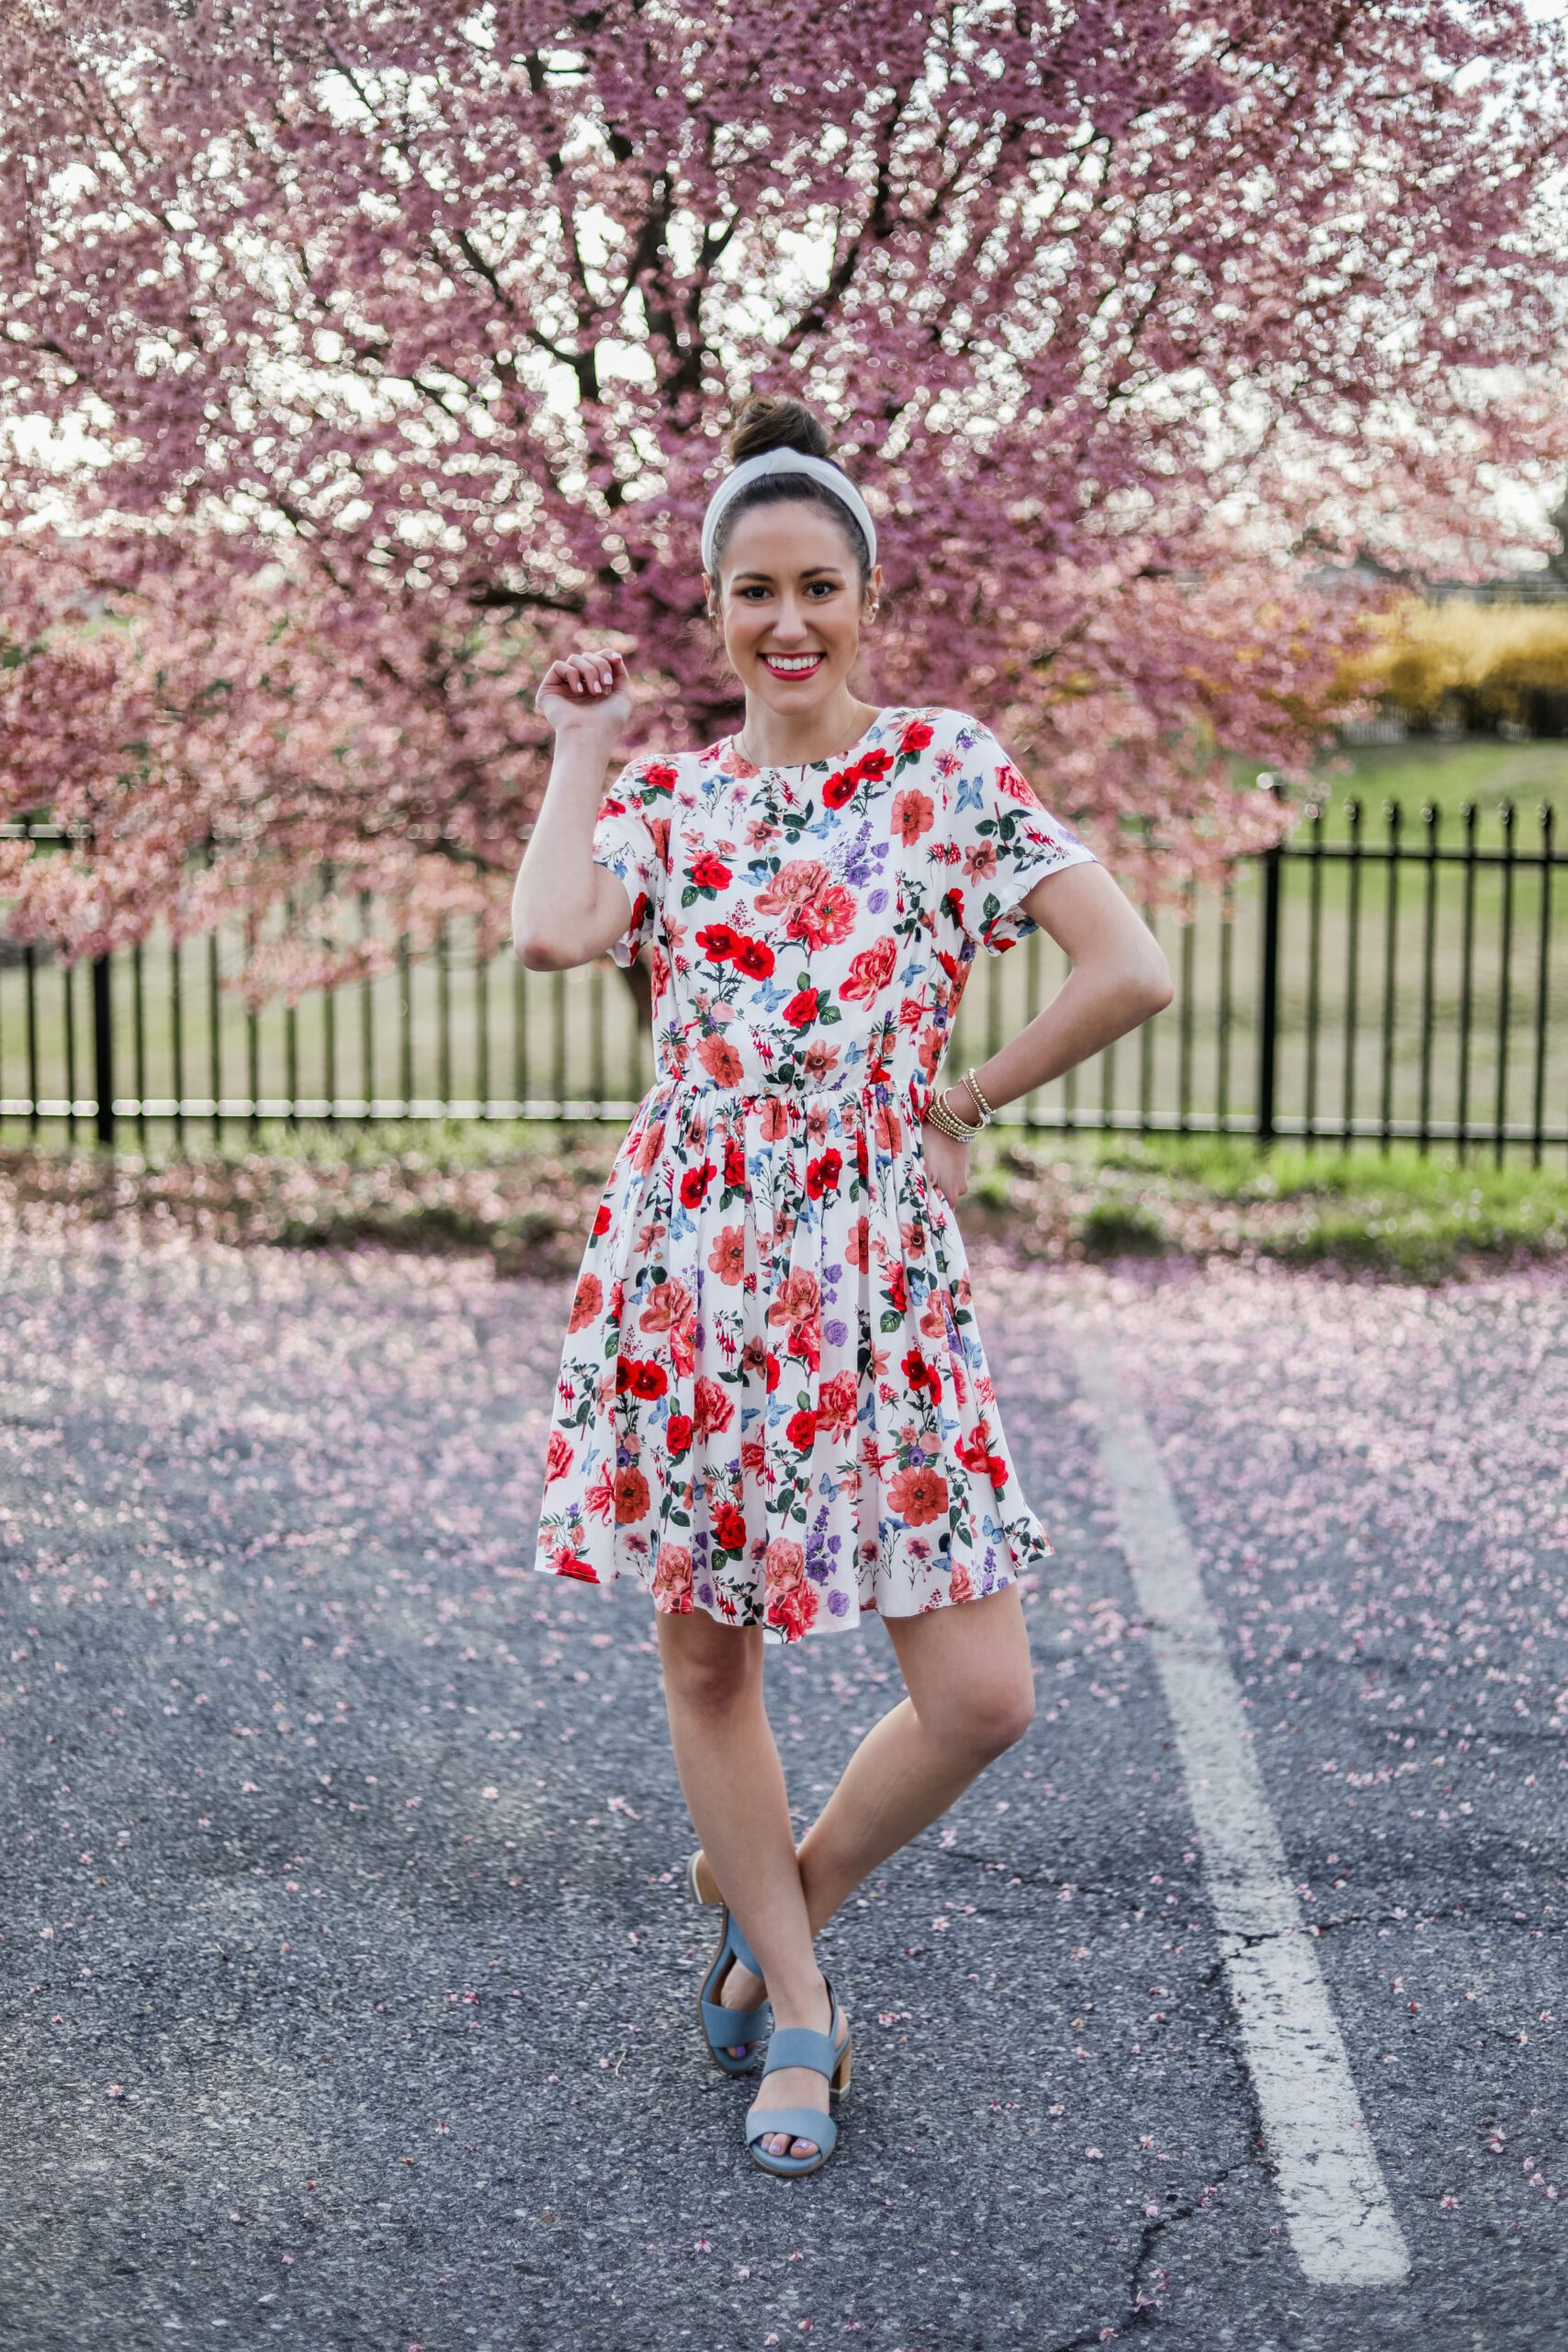 AFFORDABLE FLORAL DRESS - Under $30 amazon dress - on Coming Up Roses